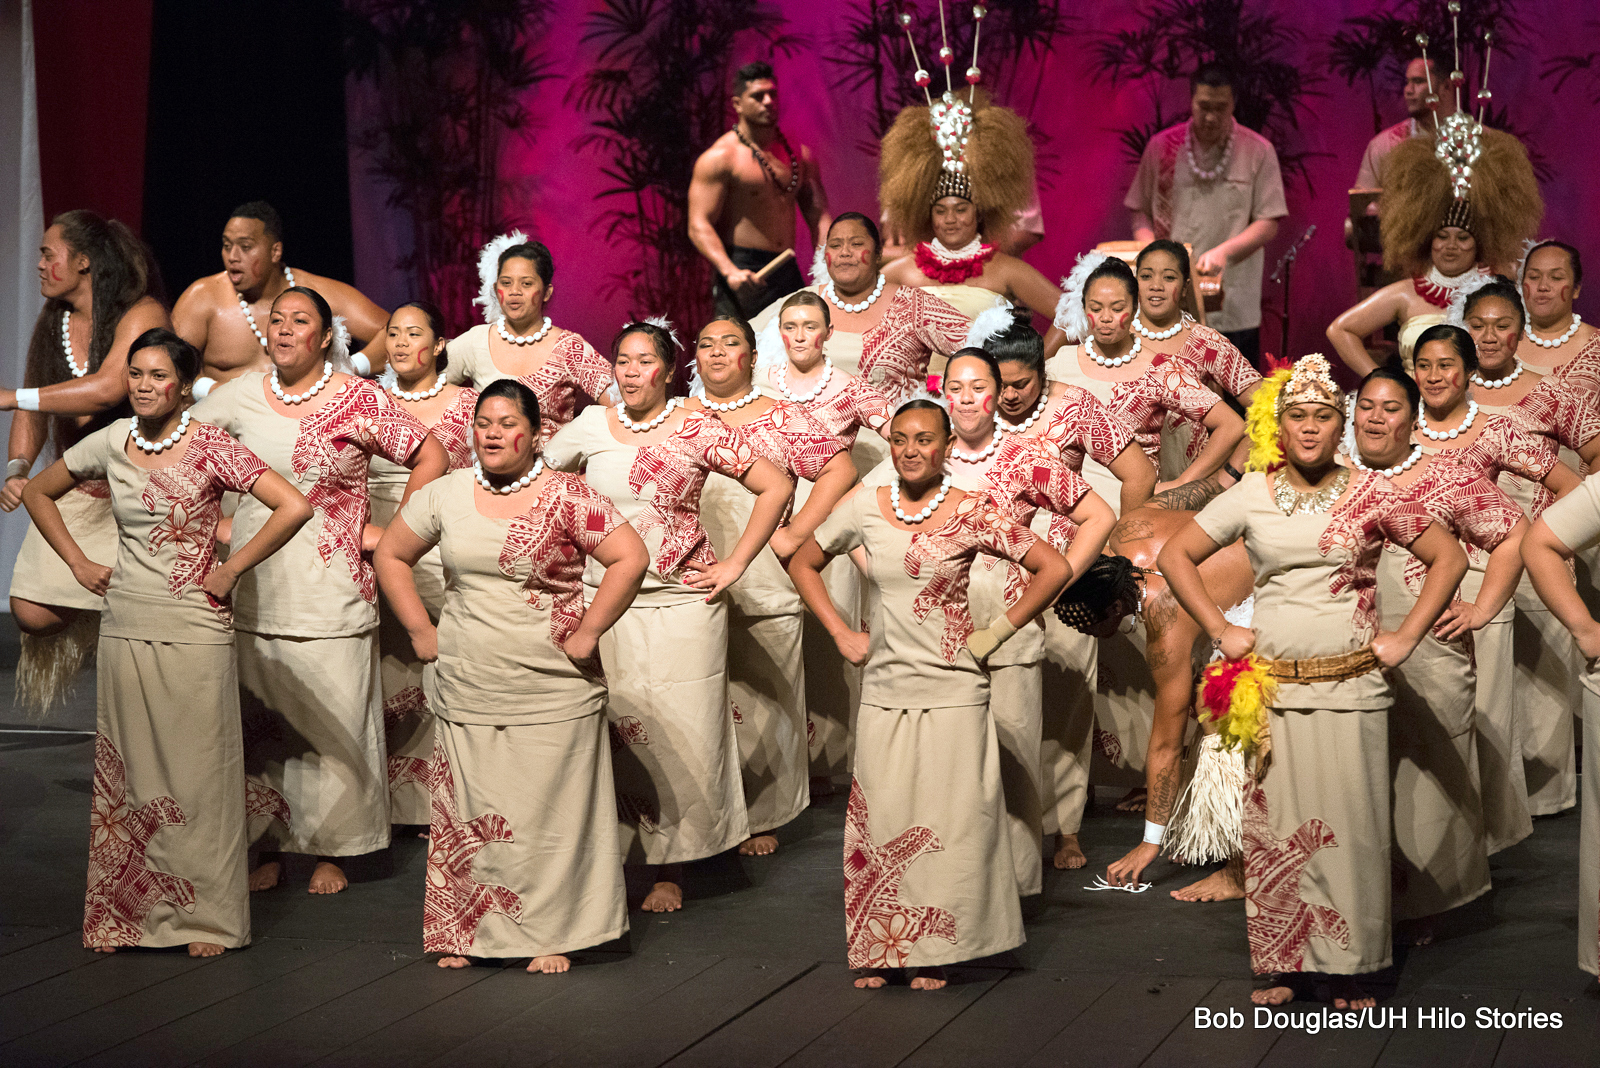 Large group of women and men, beige and red costumes, dancing.